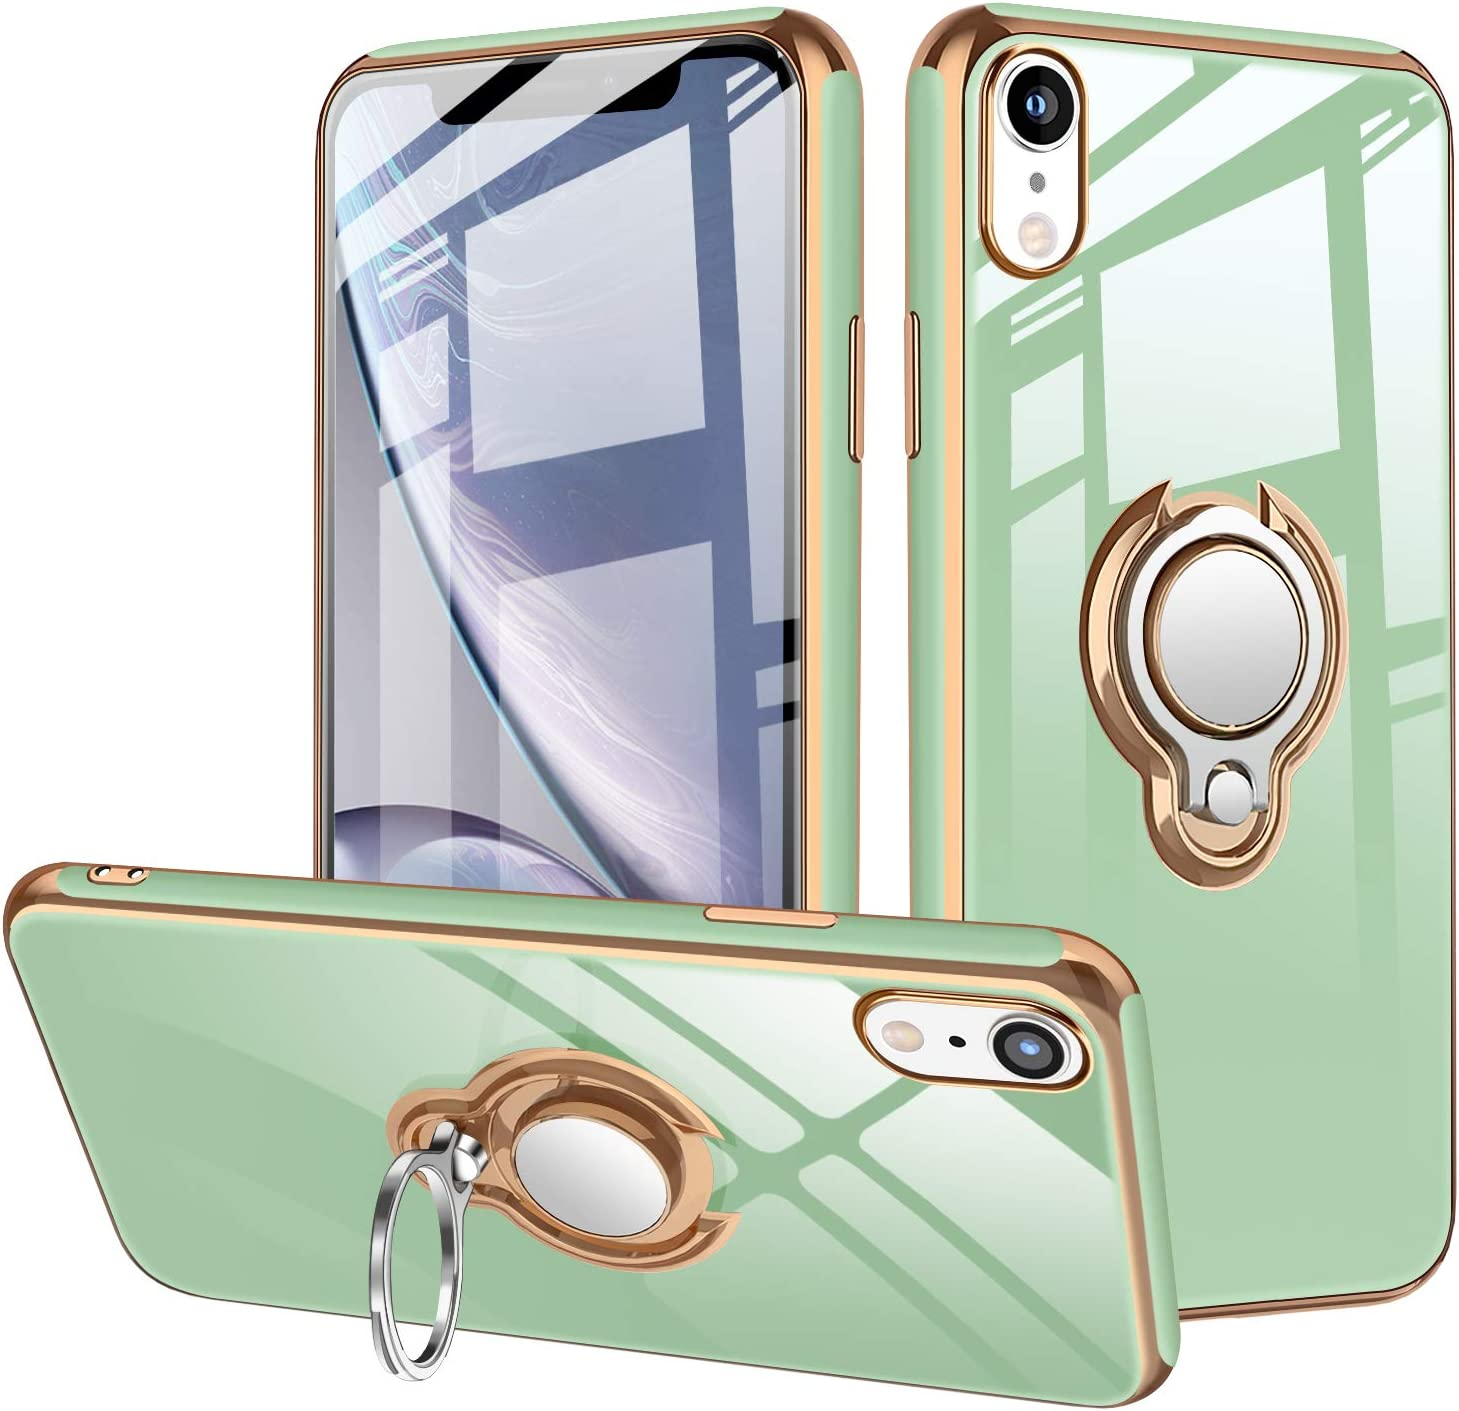 """iPhone XR Case Protective Cover 360°Rotatable Ring Kickstand Holder Case Shockproof Impact Protection Support Magnetic Car Mount Waterproof TPU Cover 6.1"""" Light Green"""